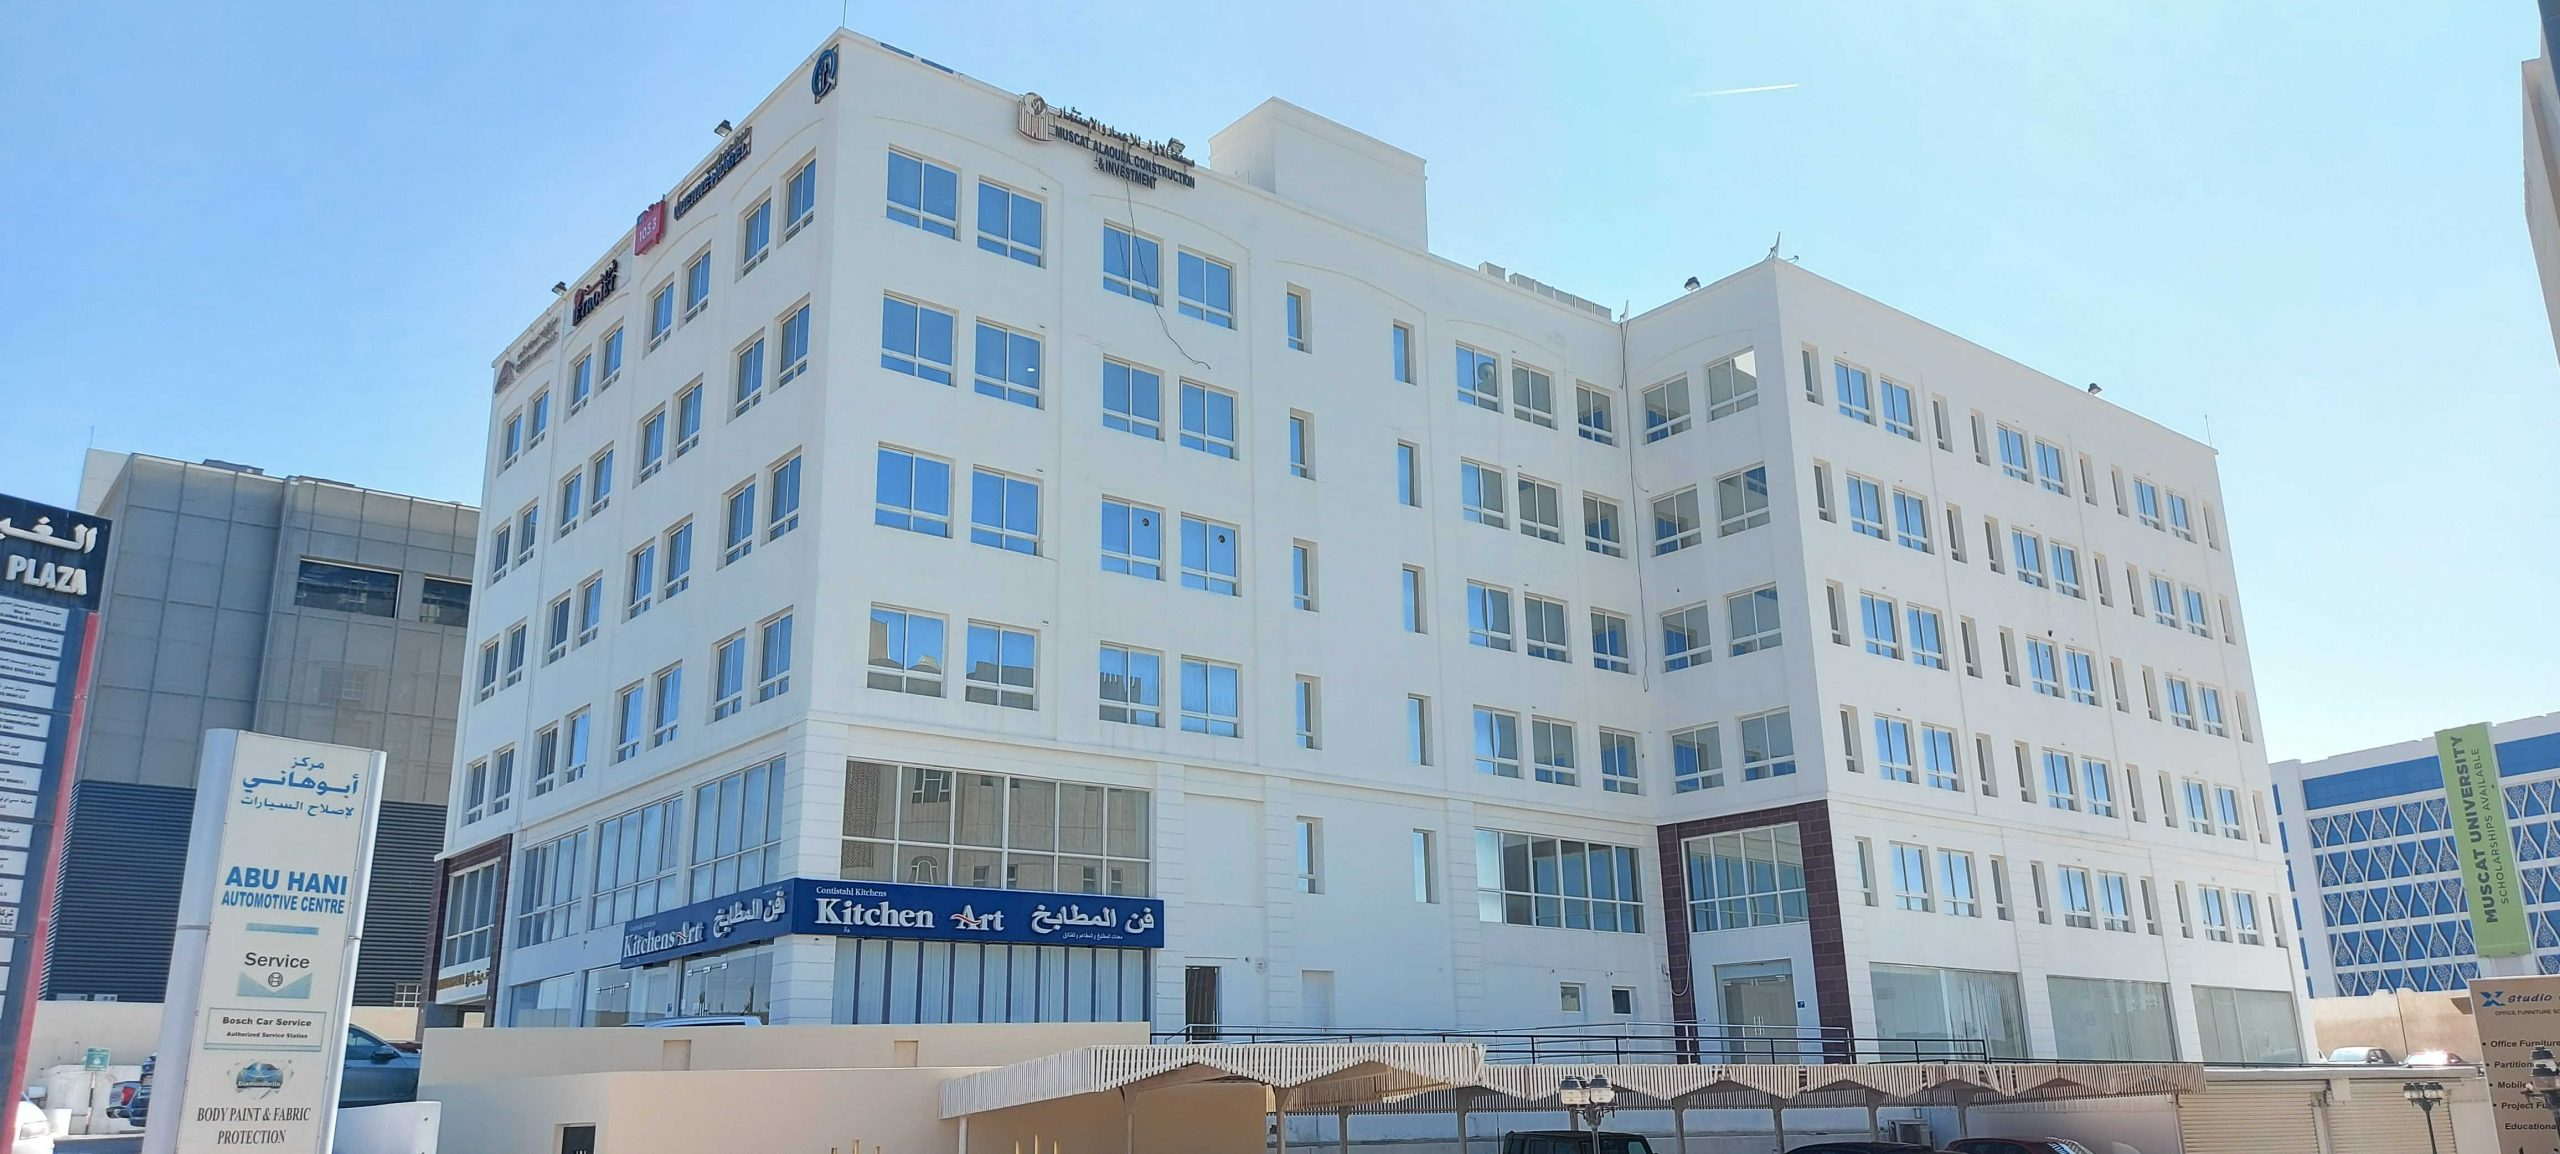 """You are currently viewing Ghobra Plaza <br><span class=""""headlin"""">Al Ghubra, Muscat,Oman</span><br><span class=""""headlin2"""">Category: Office Space – For Rent</span>"""